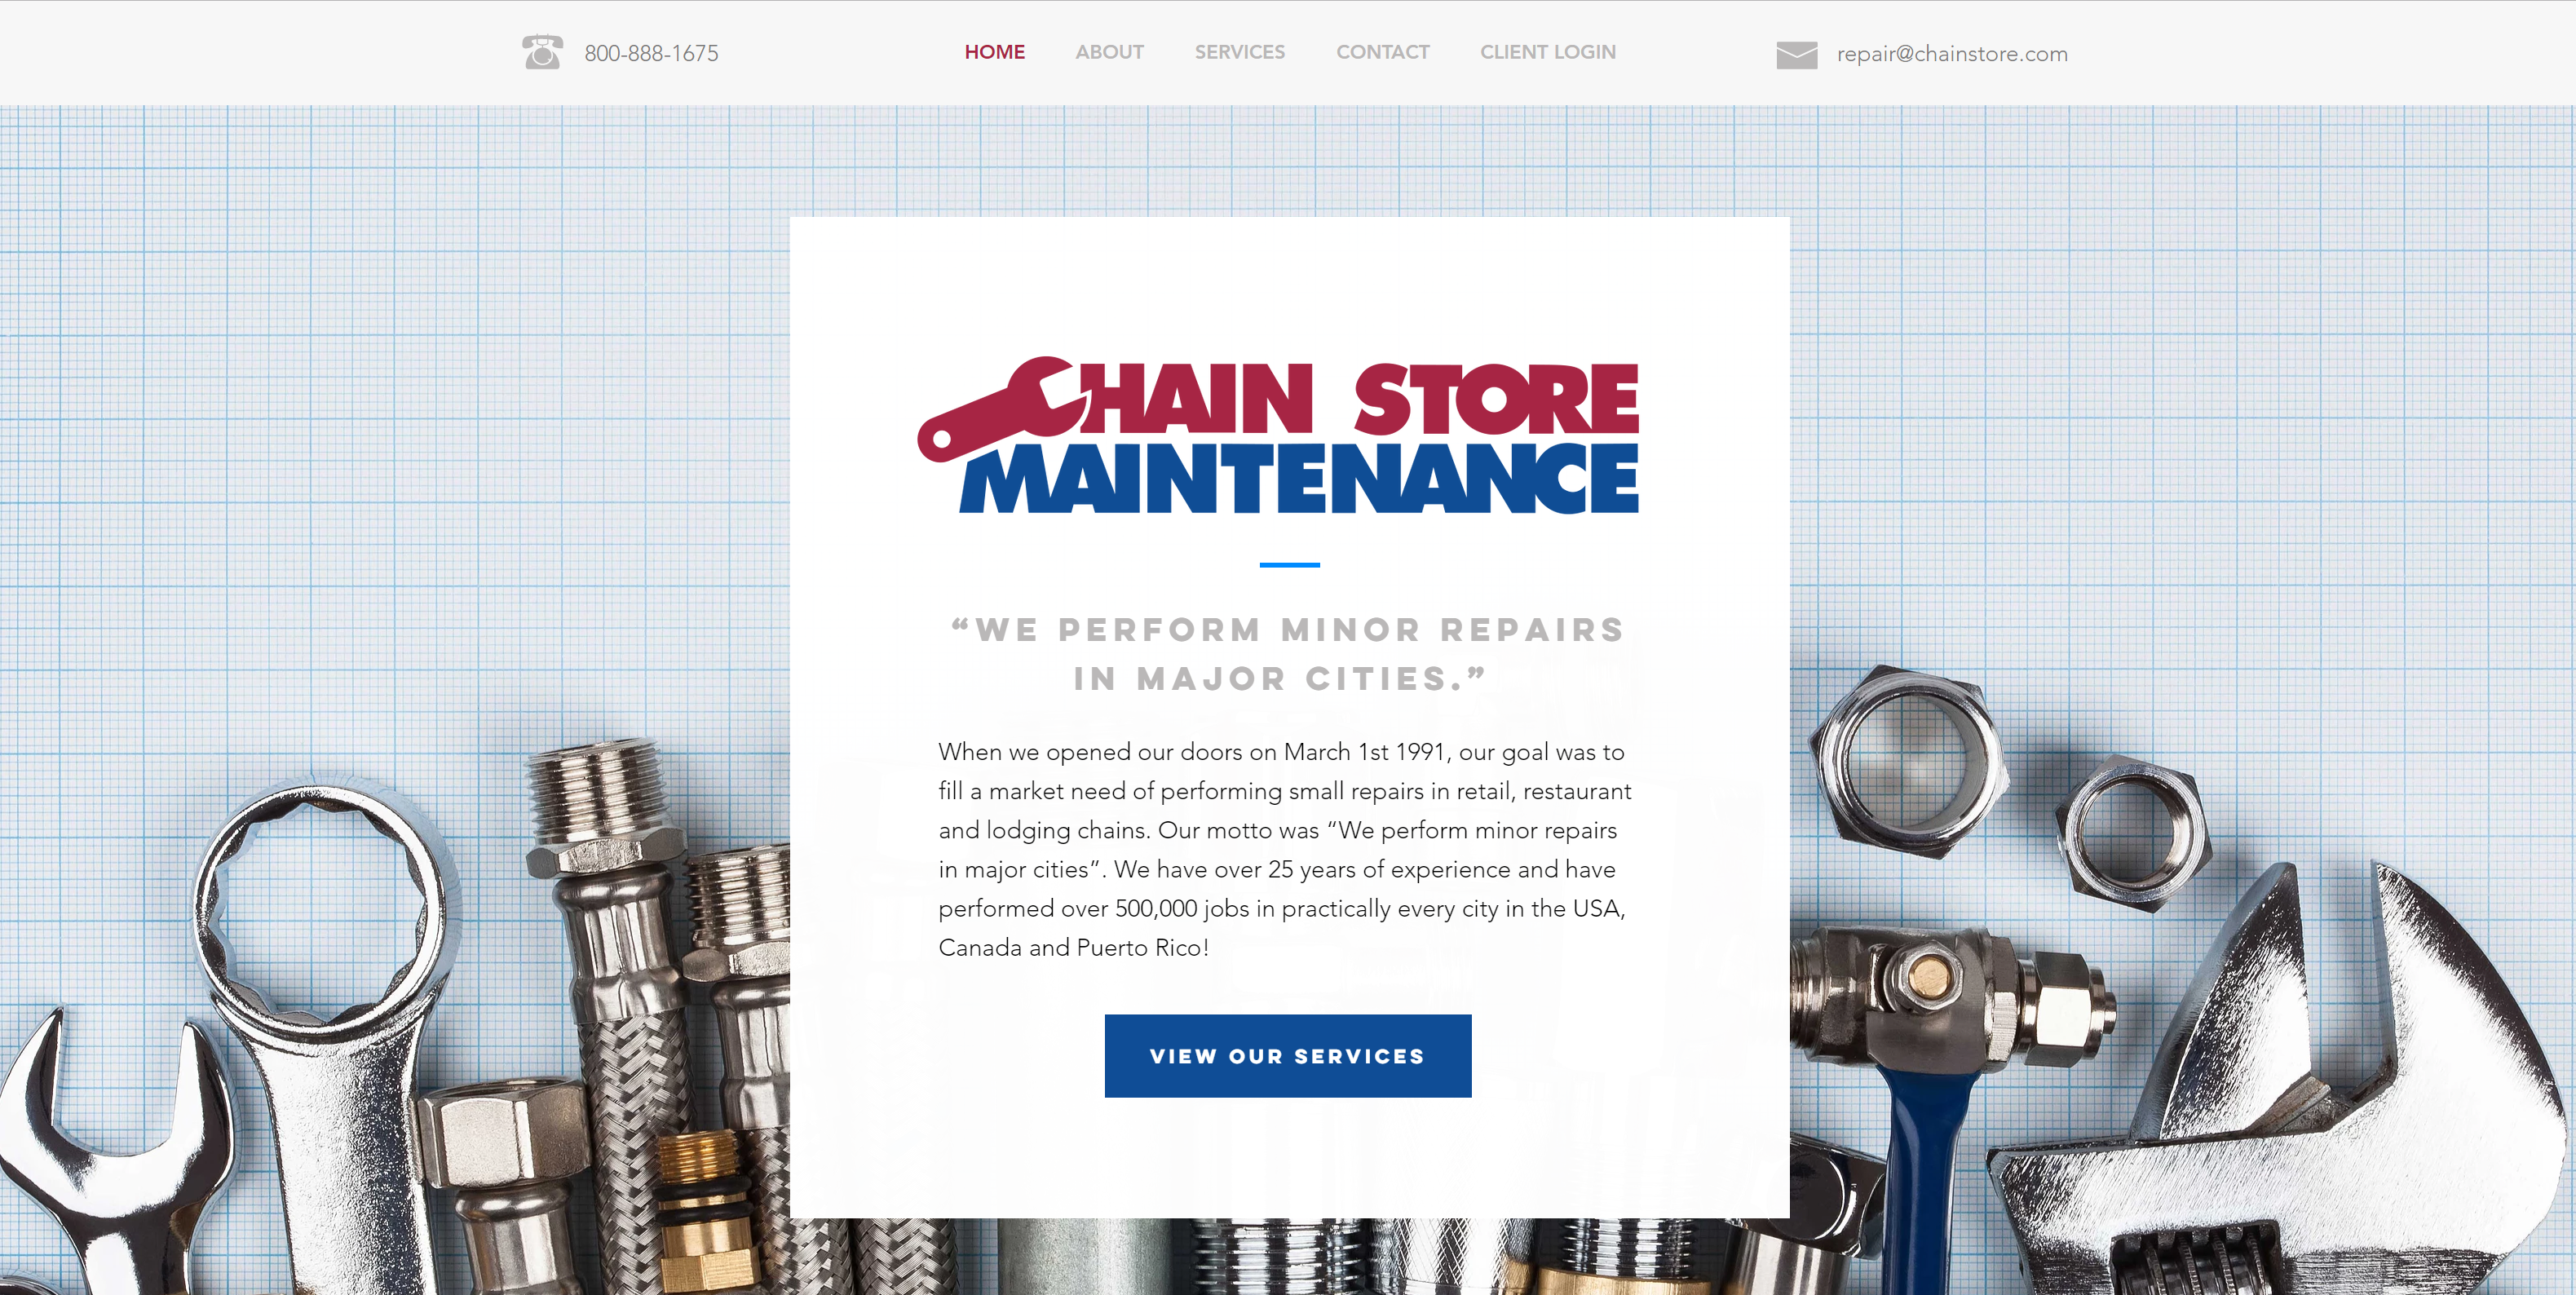 Sarah-Cas-Branding-and-Design-Website-Design-Chain Store Maintenance 4